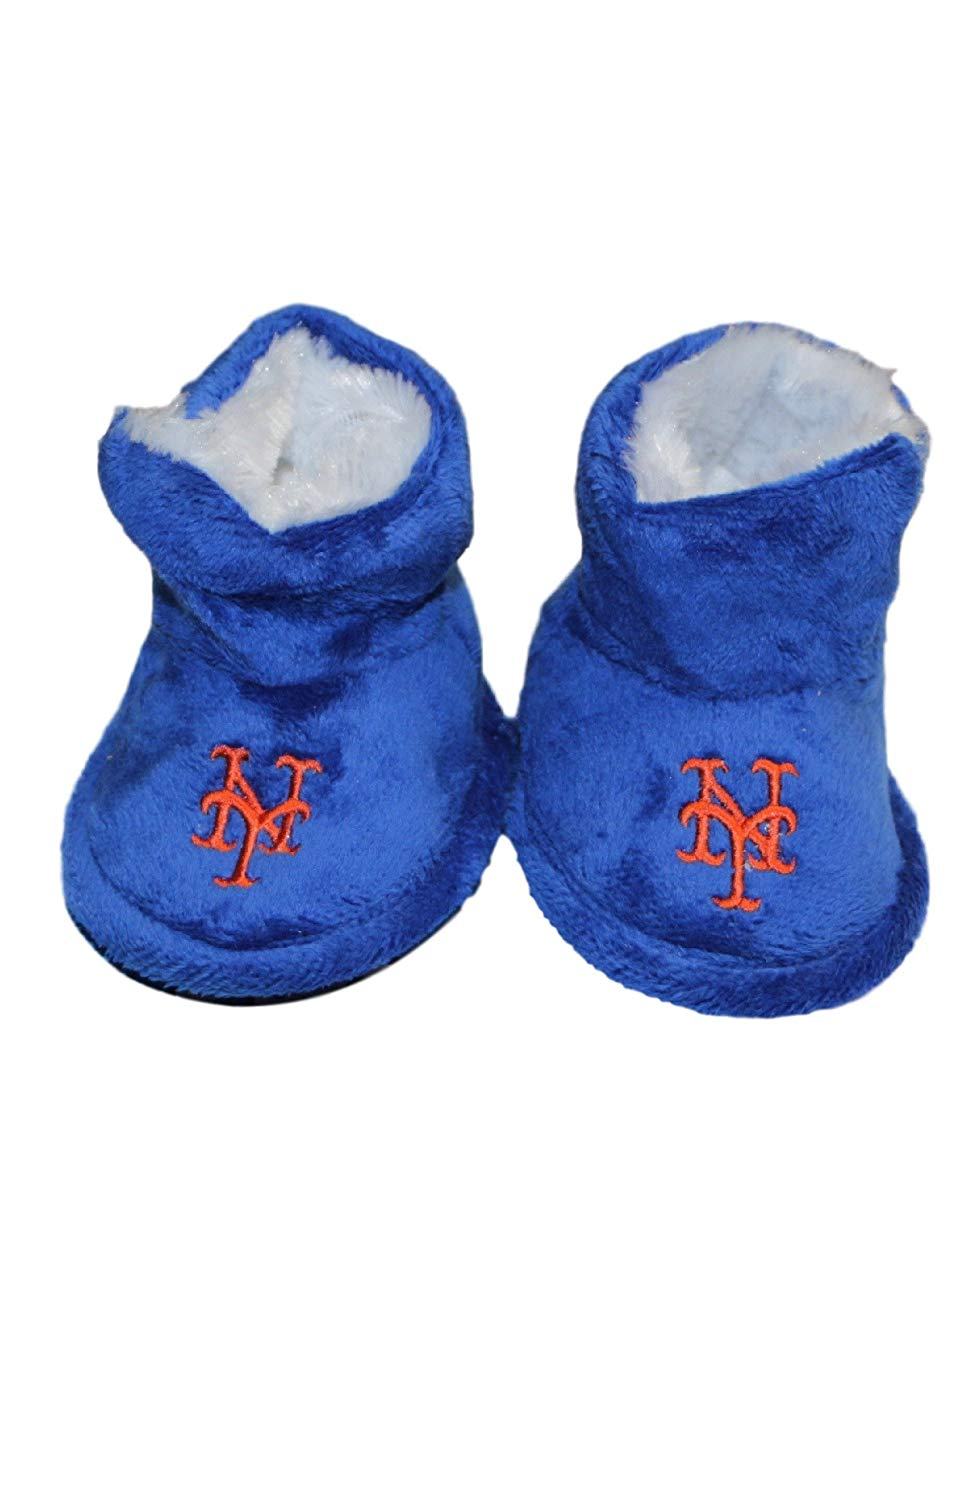 JEWELS FASHION Sports Fans New York Baby Slippers